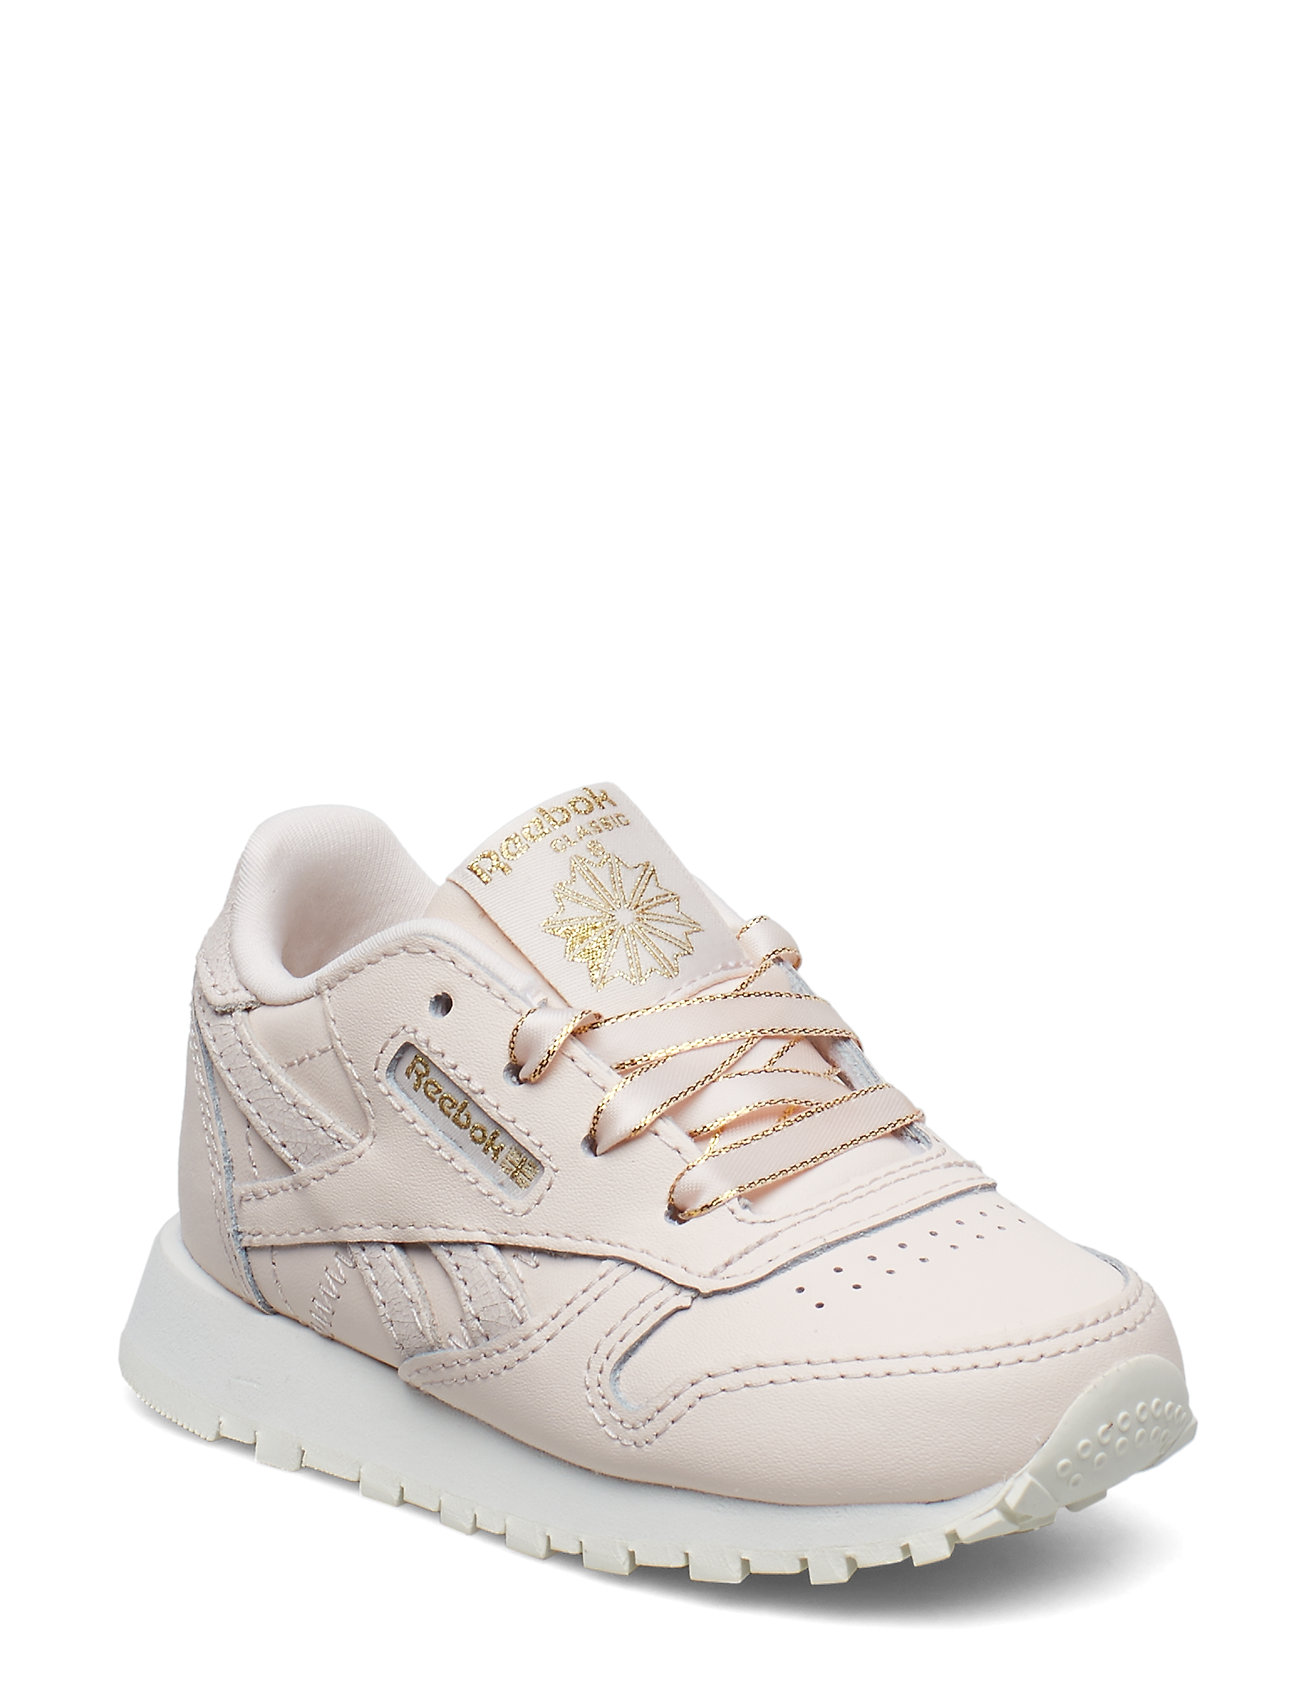 Reebok Classics CLASSIC LEATHER - PALE PINK/CHALK/GOLD